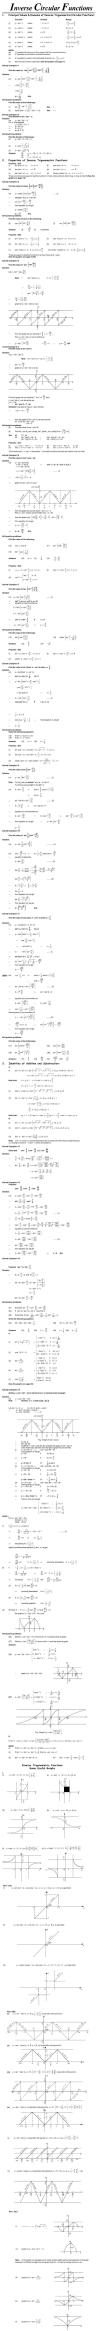 Maths Study Material - Chapter 8